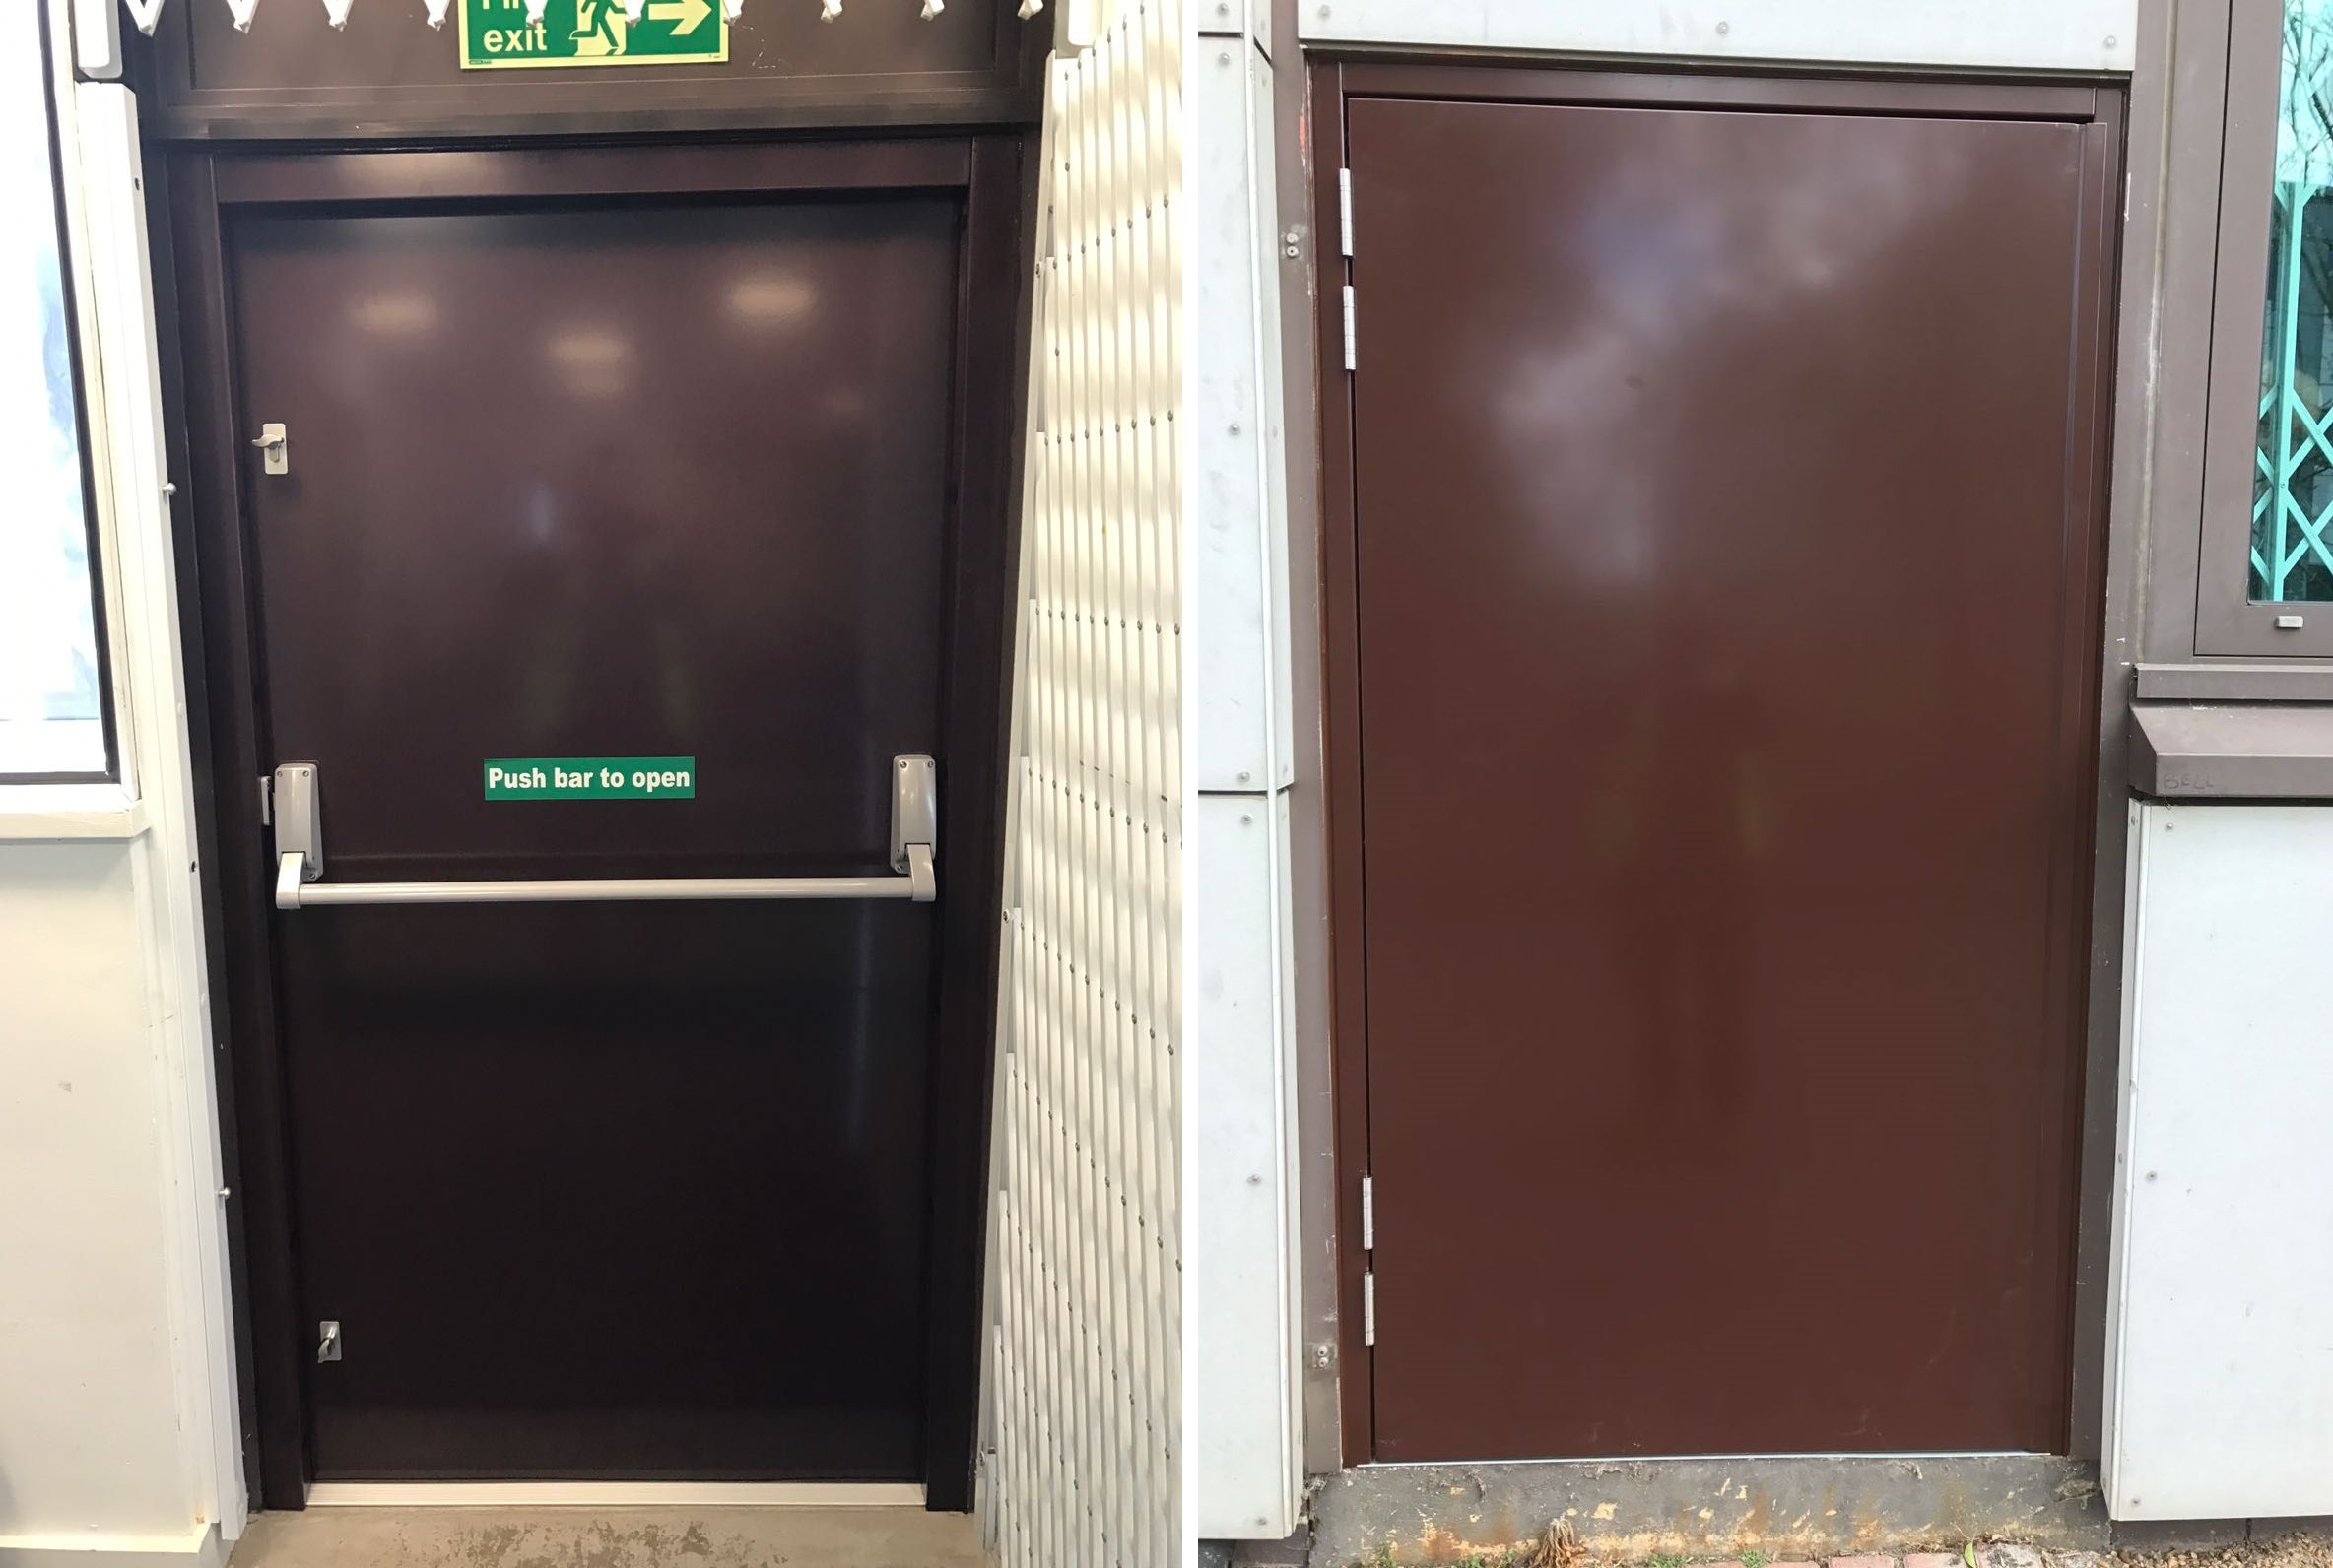 Our RSG8100 Fire Exit Security Door fitted